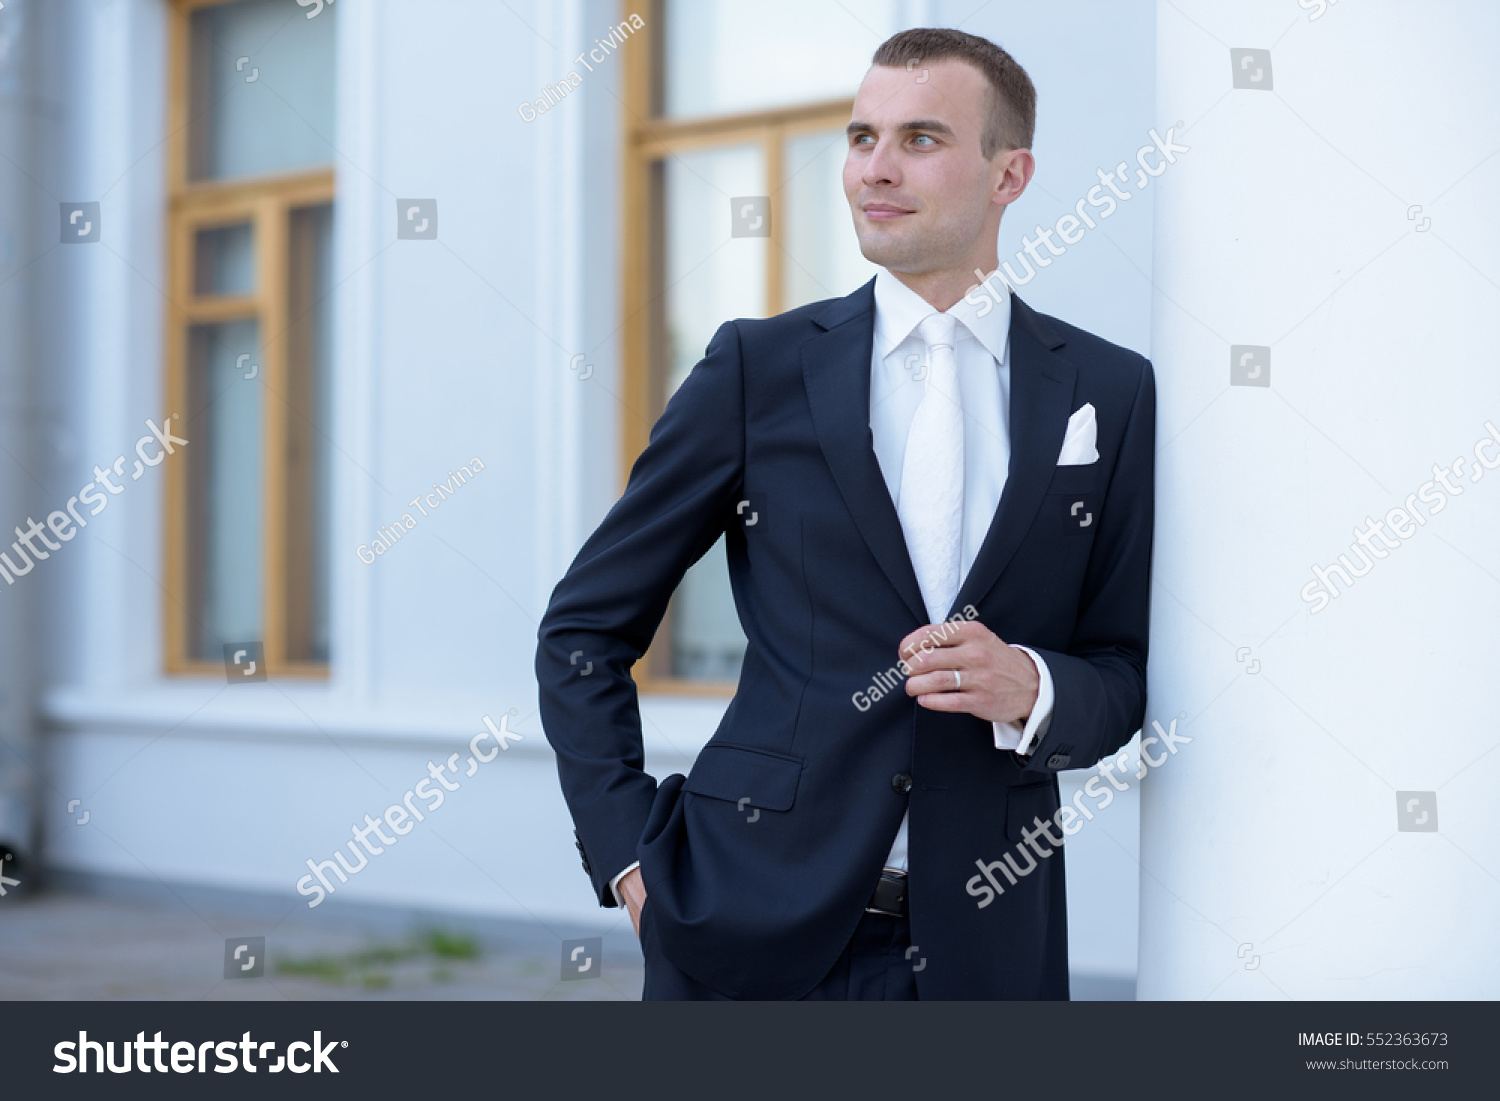 Handsome Groom Suit Nature Male Portrait Stock Photo 552363673 ...